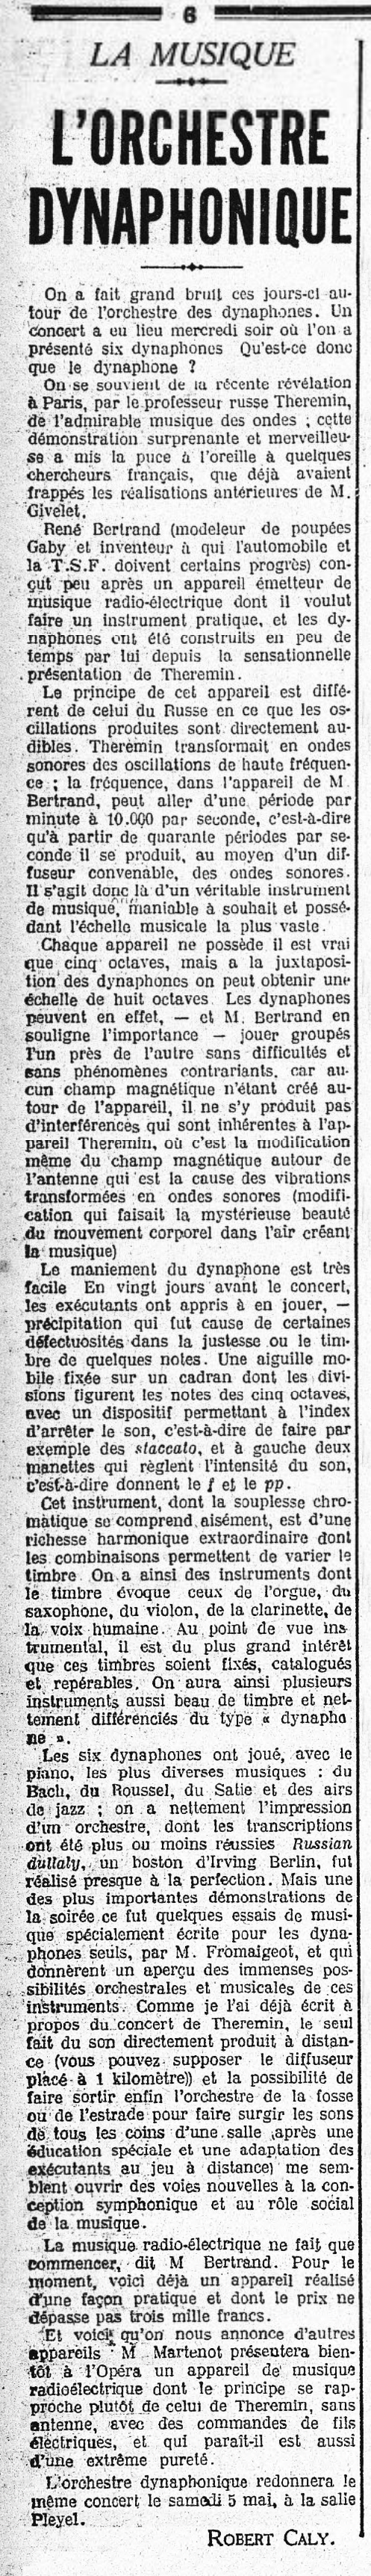 Review from 'Numéro Le Gaulois' February 12th 1982.